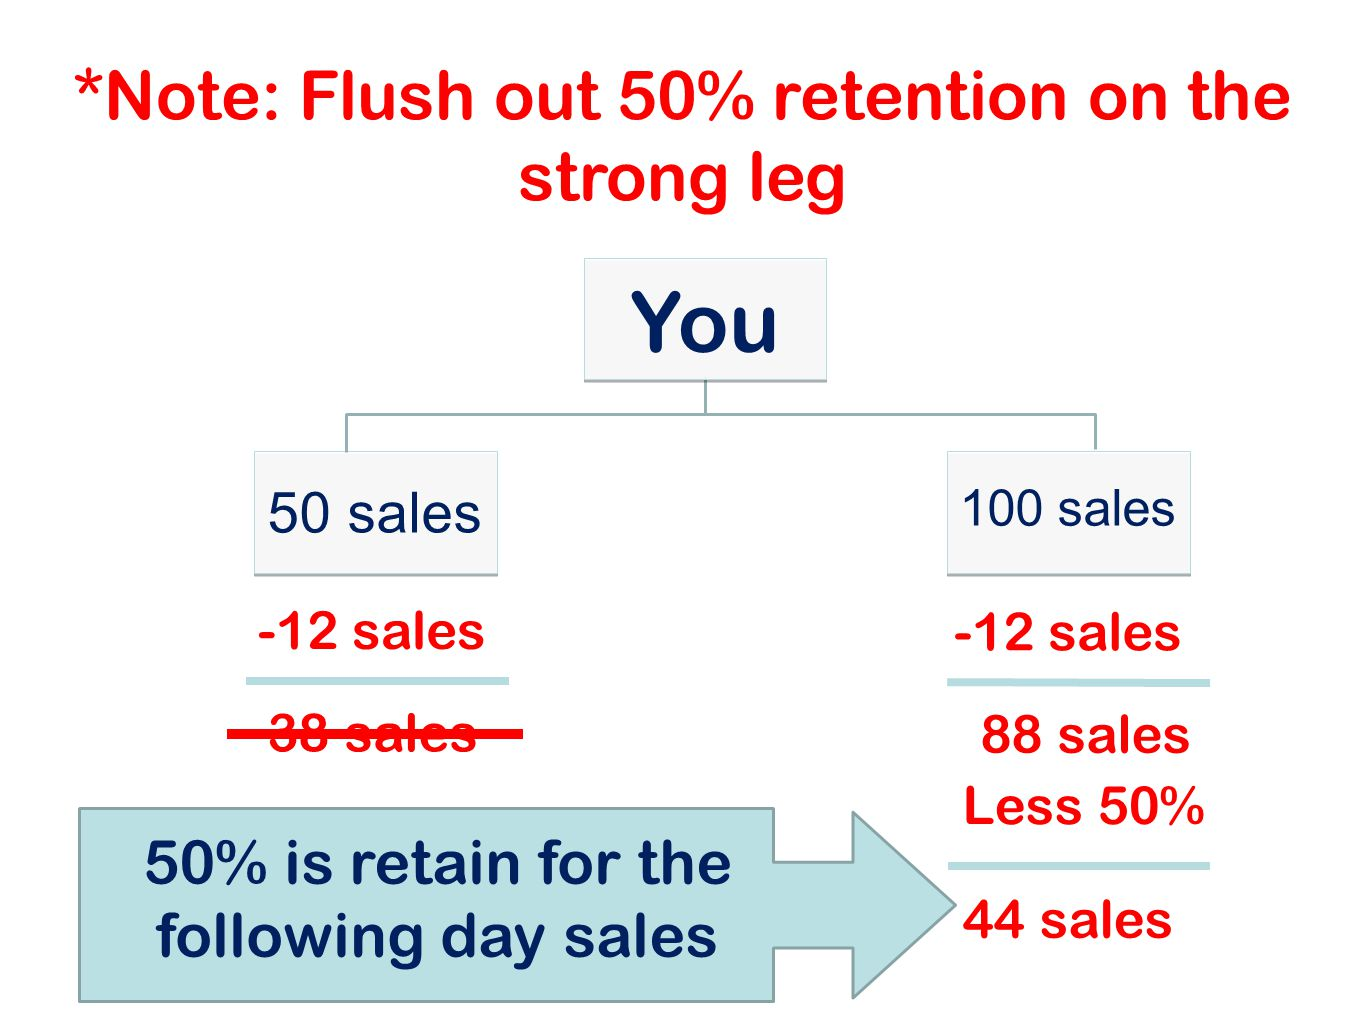 *Note: Flush out 50% retention on the strong leg 50 sales -12 sales 38 sales 88 sales Less 50% You 44 sales 50% is retain for the following day sales 100 sales